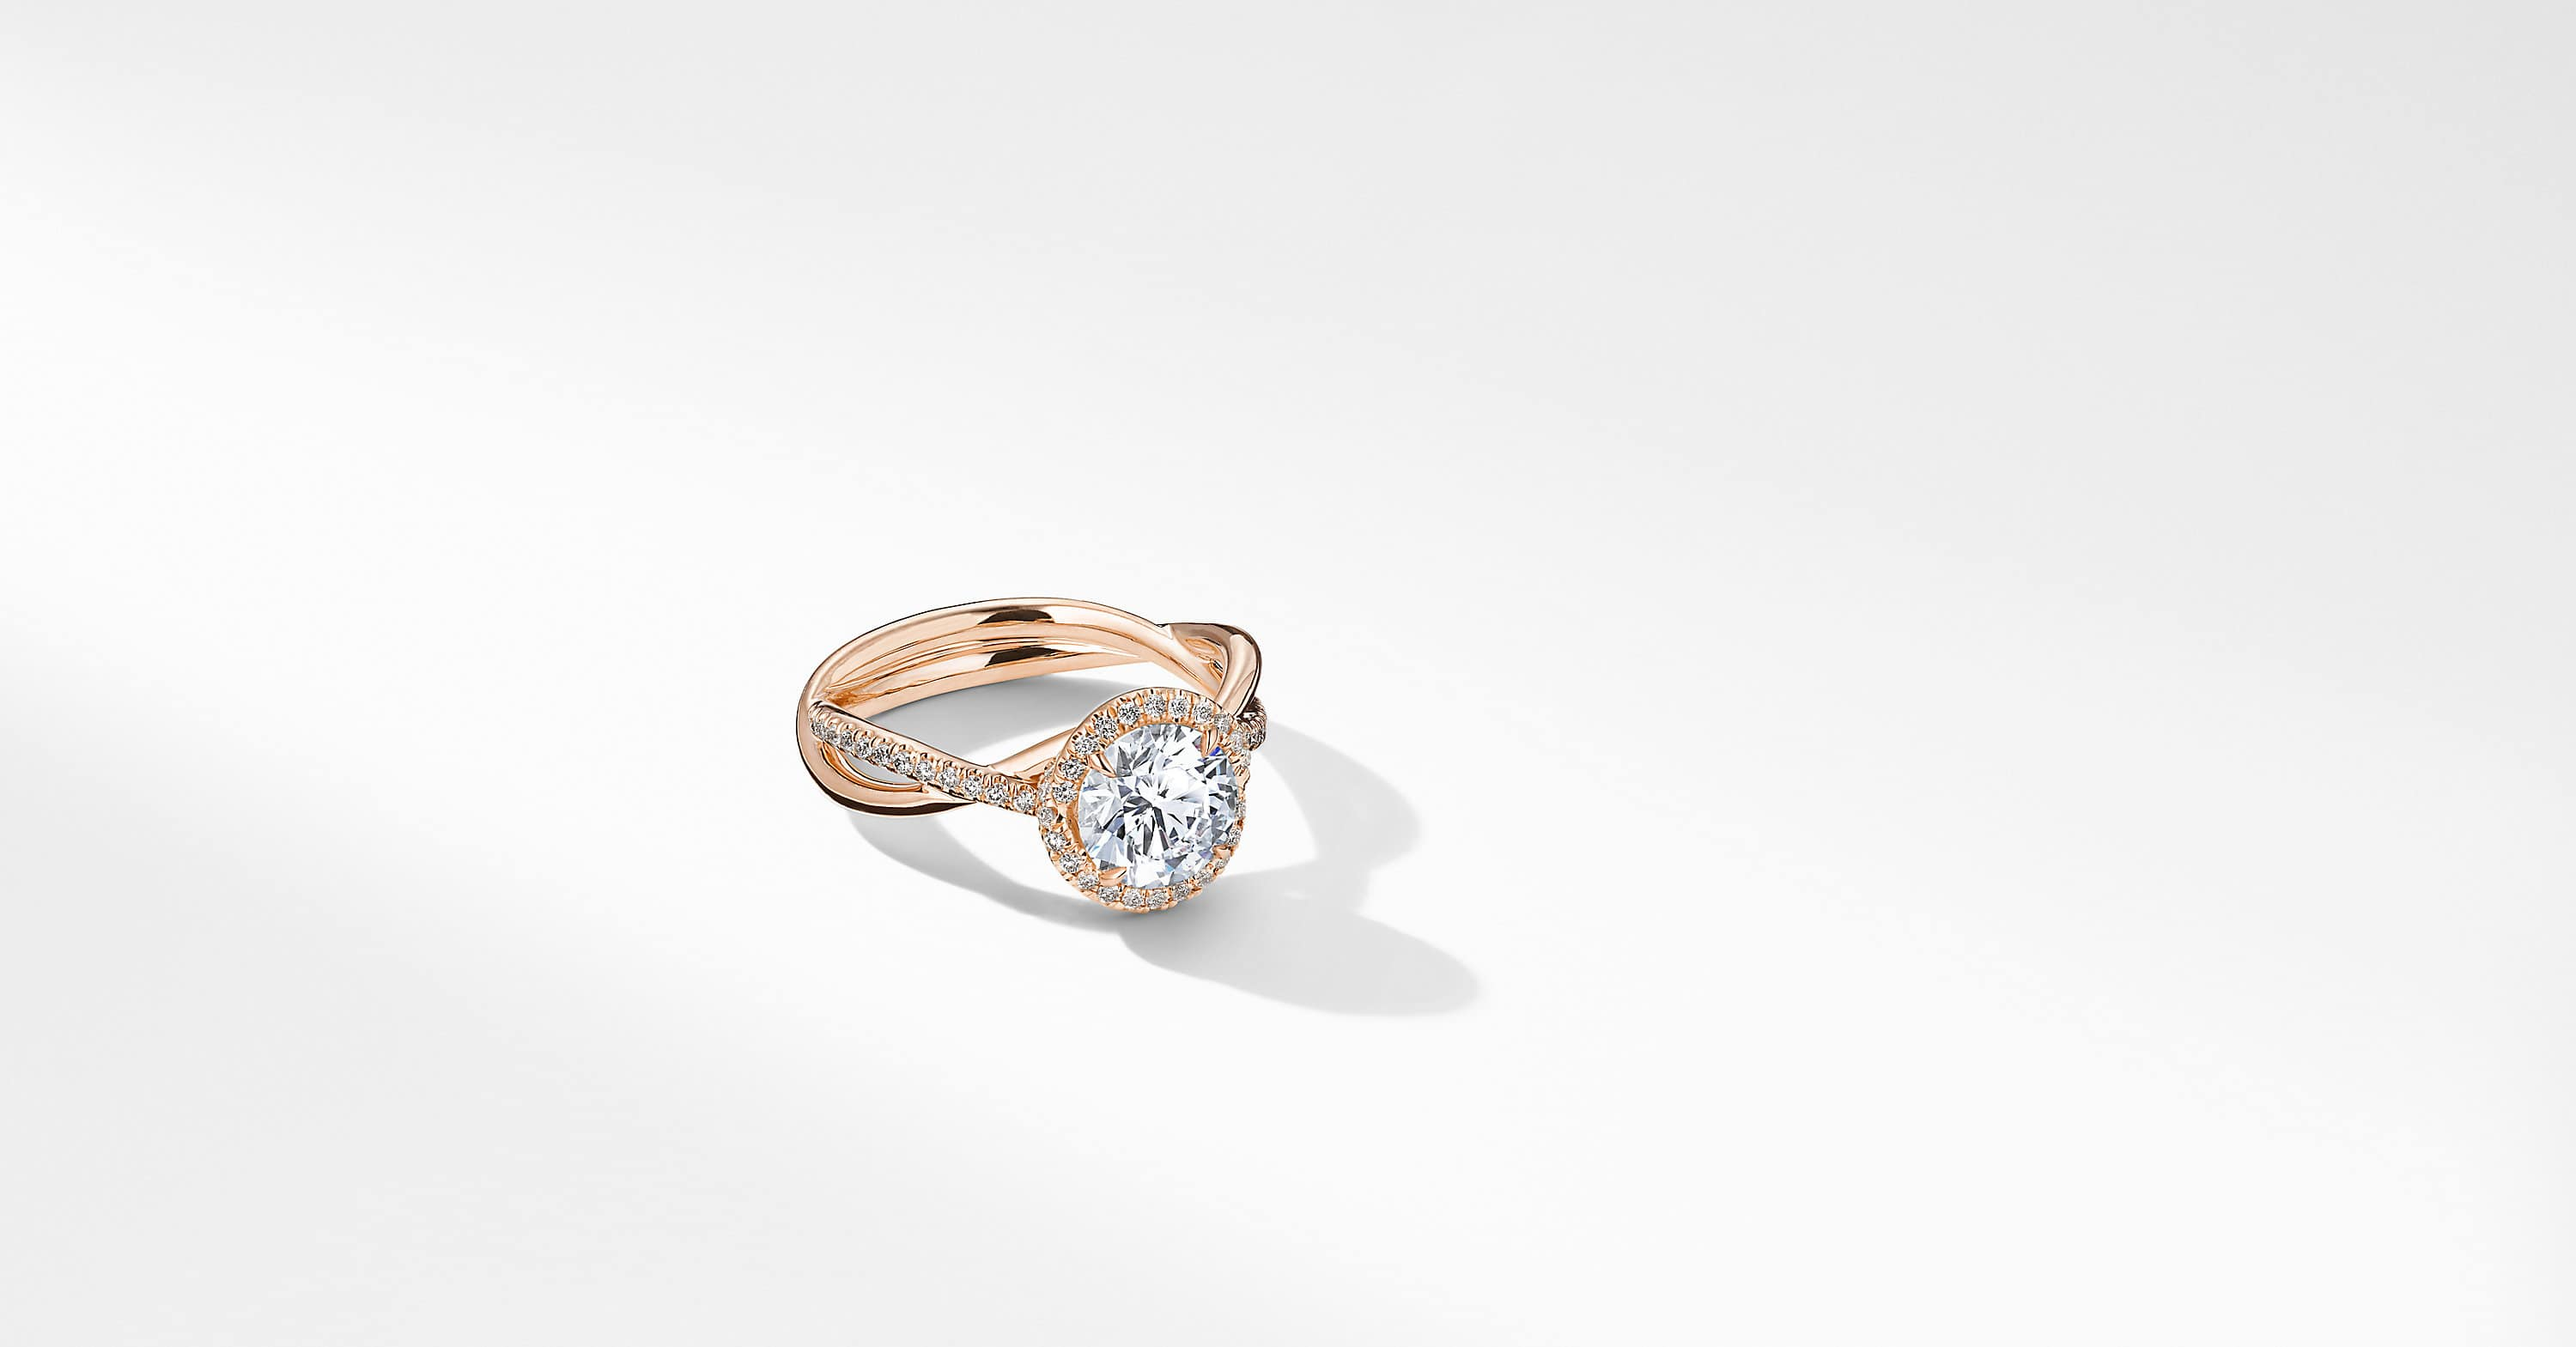 DY Lanai Part Pavé Engagement Ring in 18K Rose Gold, Round